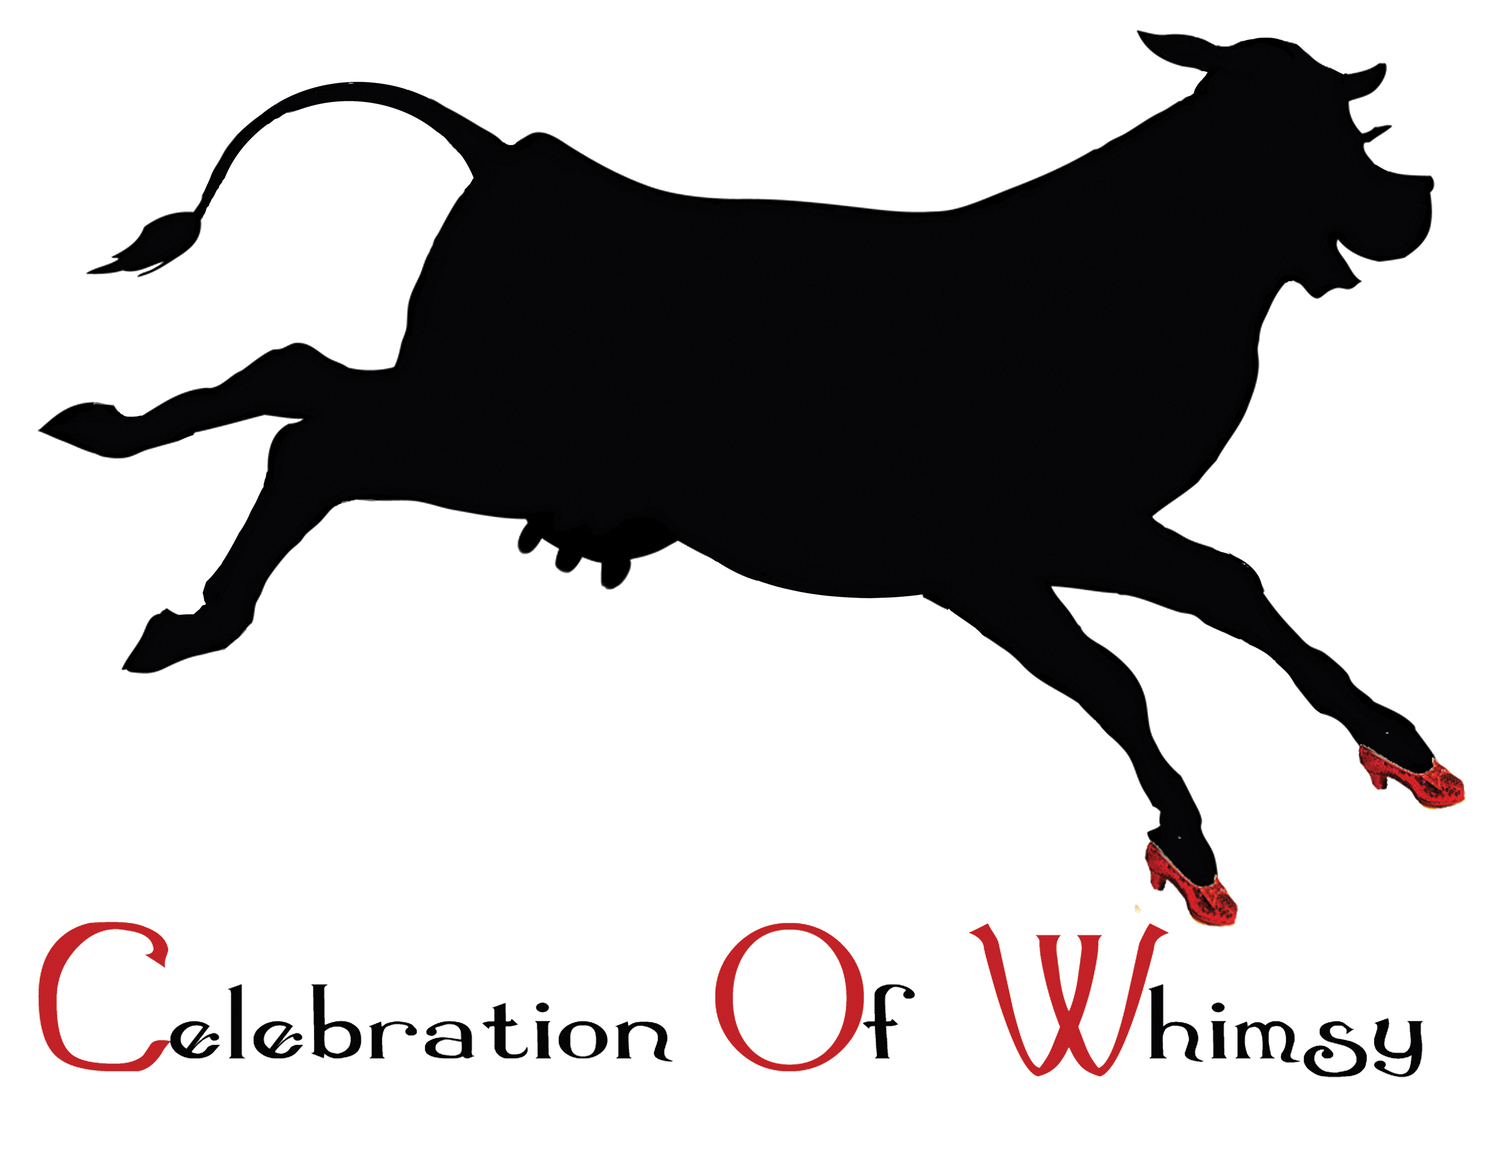 The Celebration of Whimsy